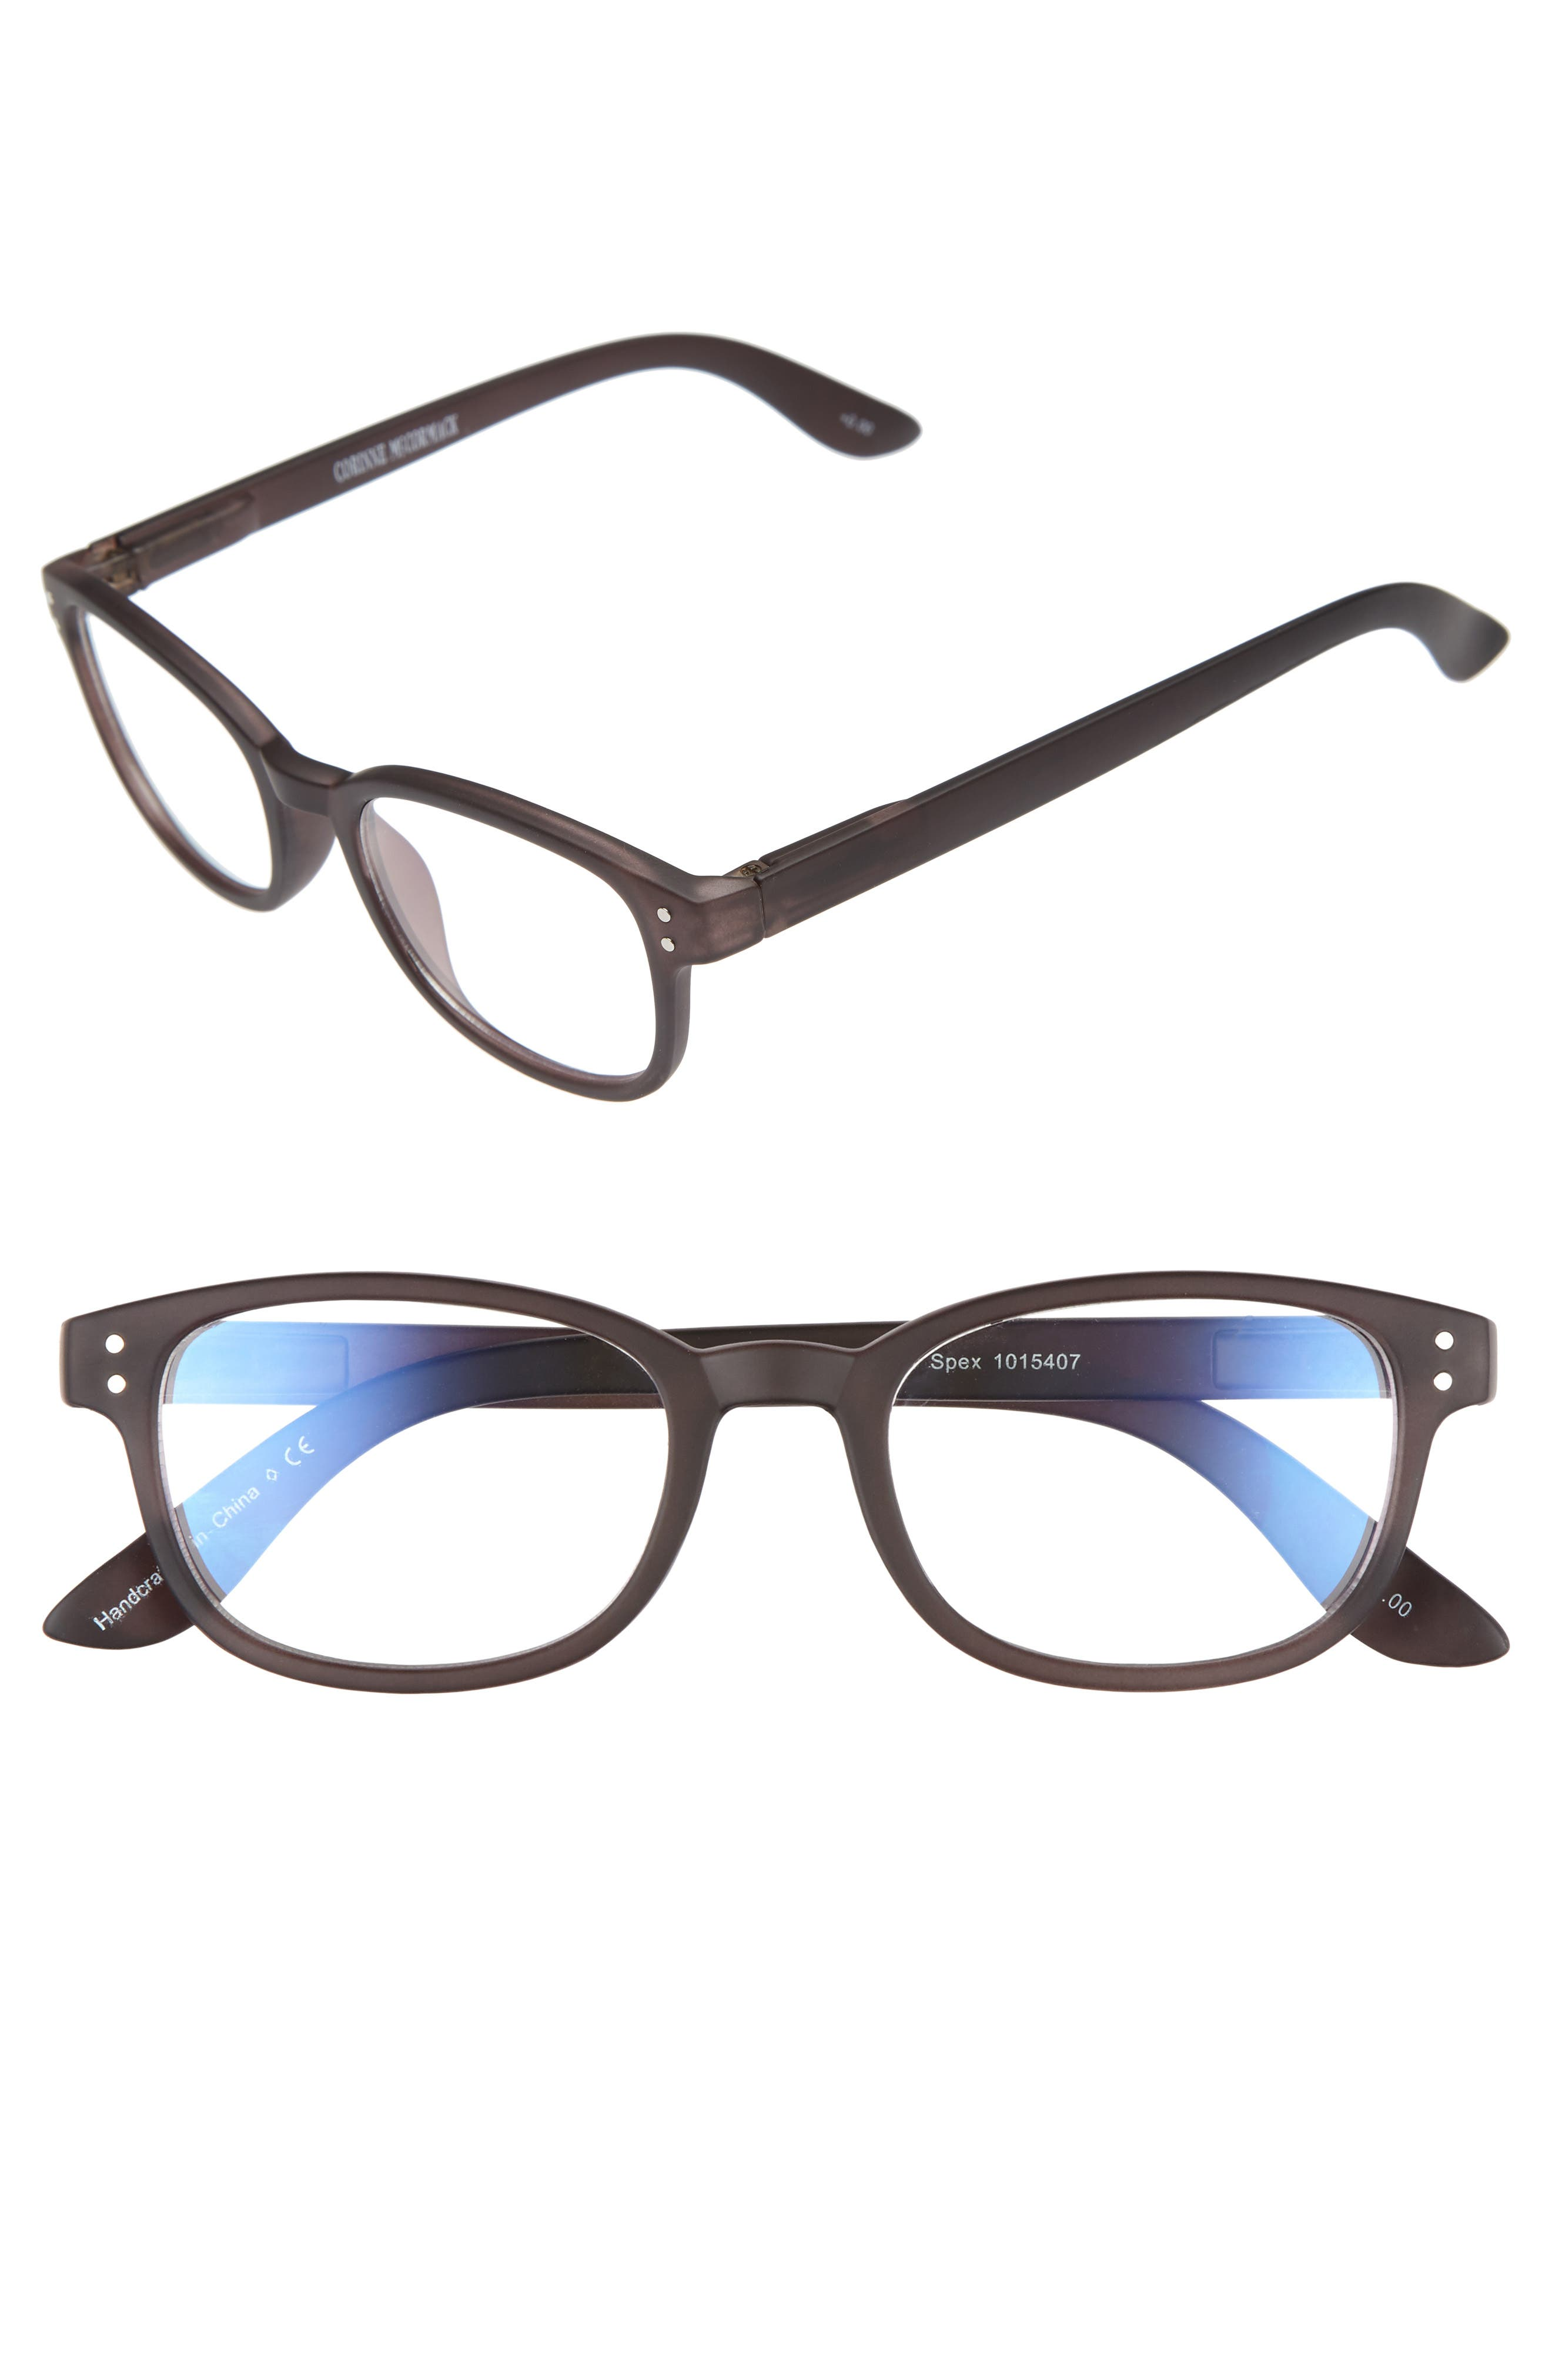 Main Image - Corinne McCormack ColorSpex® 50mm Blue Light Blocking Reading Glasses